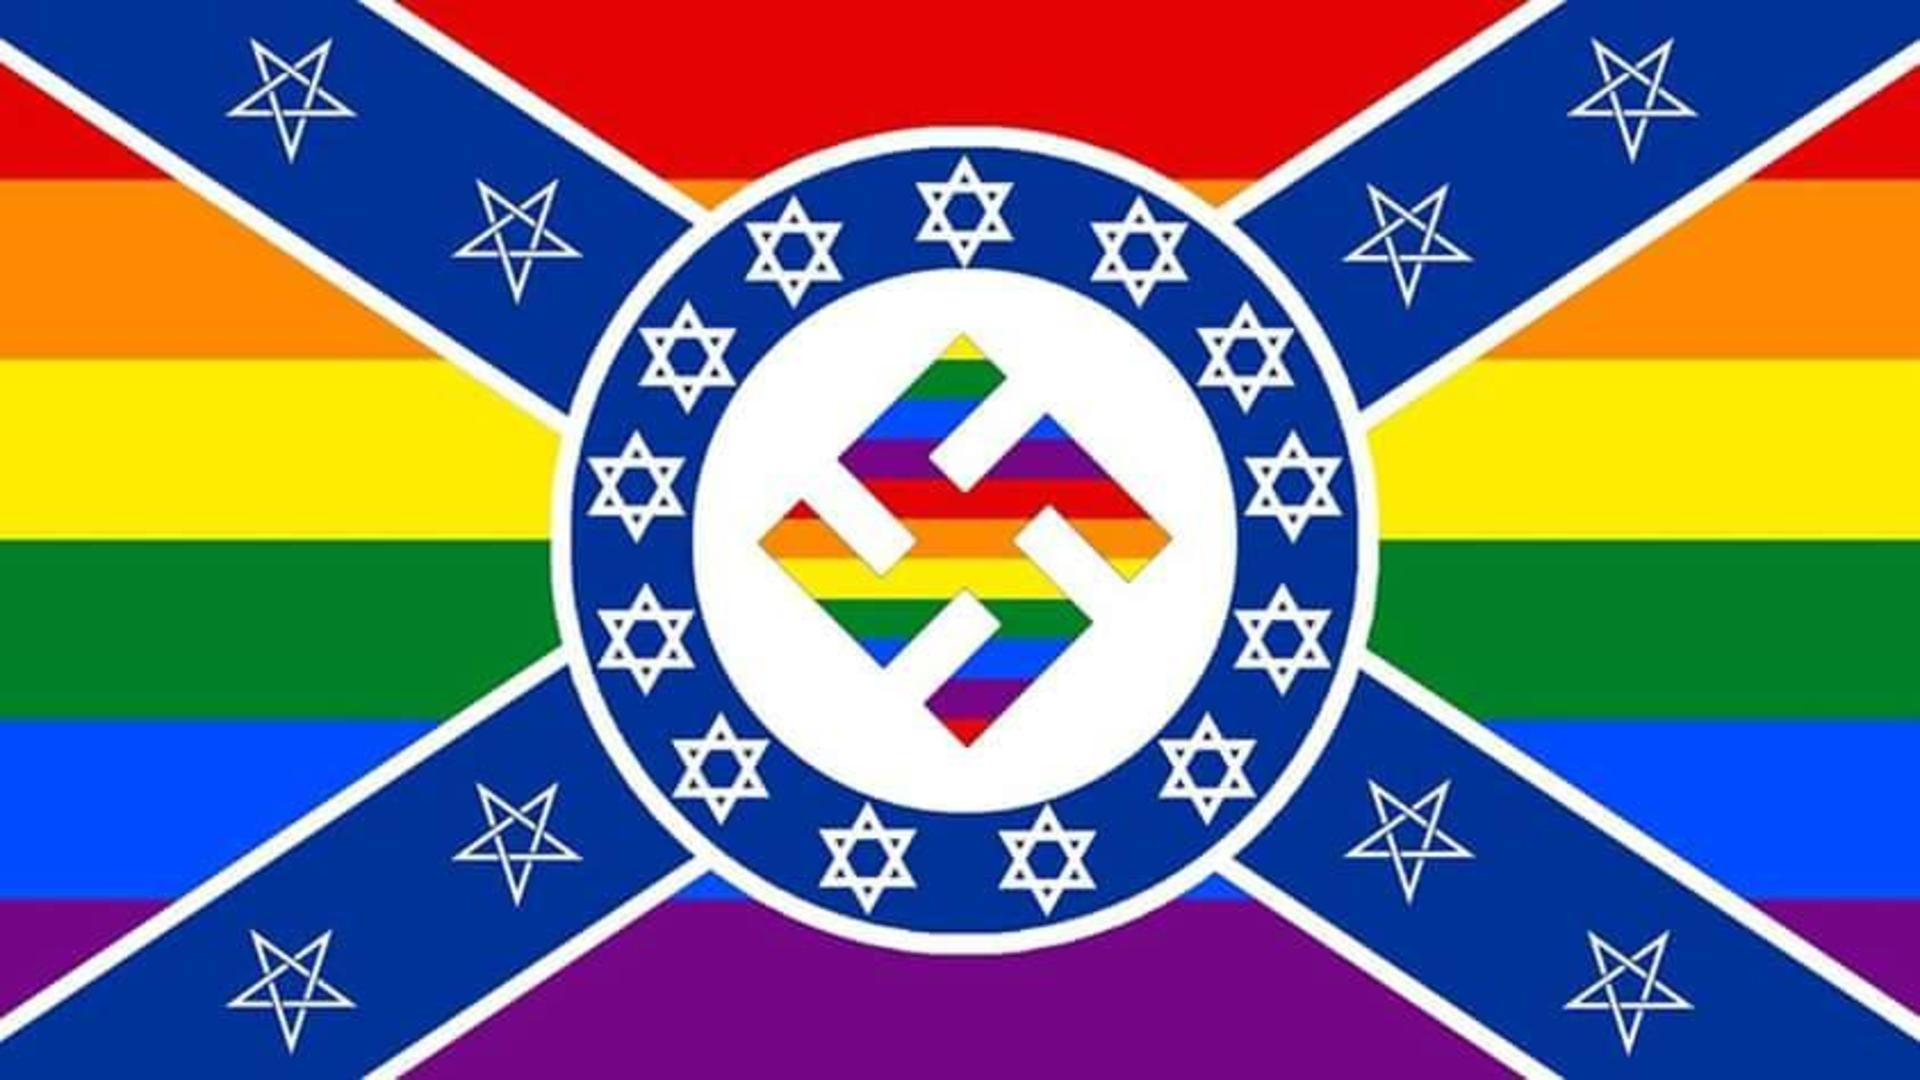 the most offensive flag ever, let's offend everyone at once!